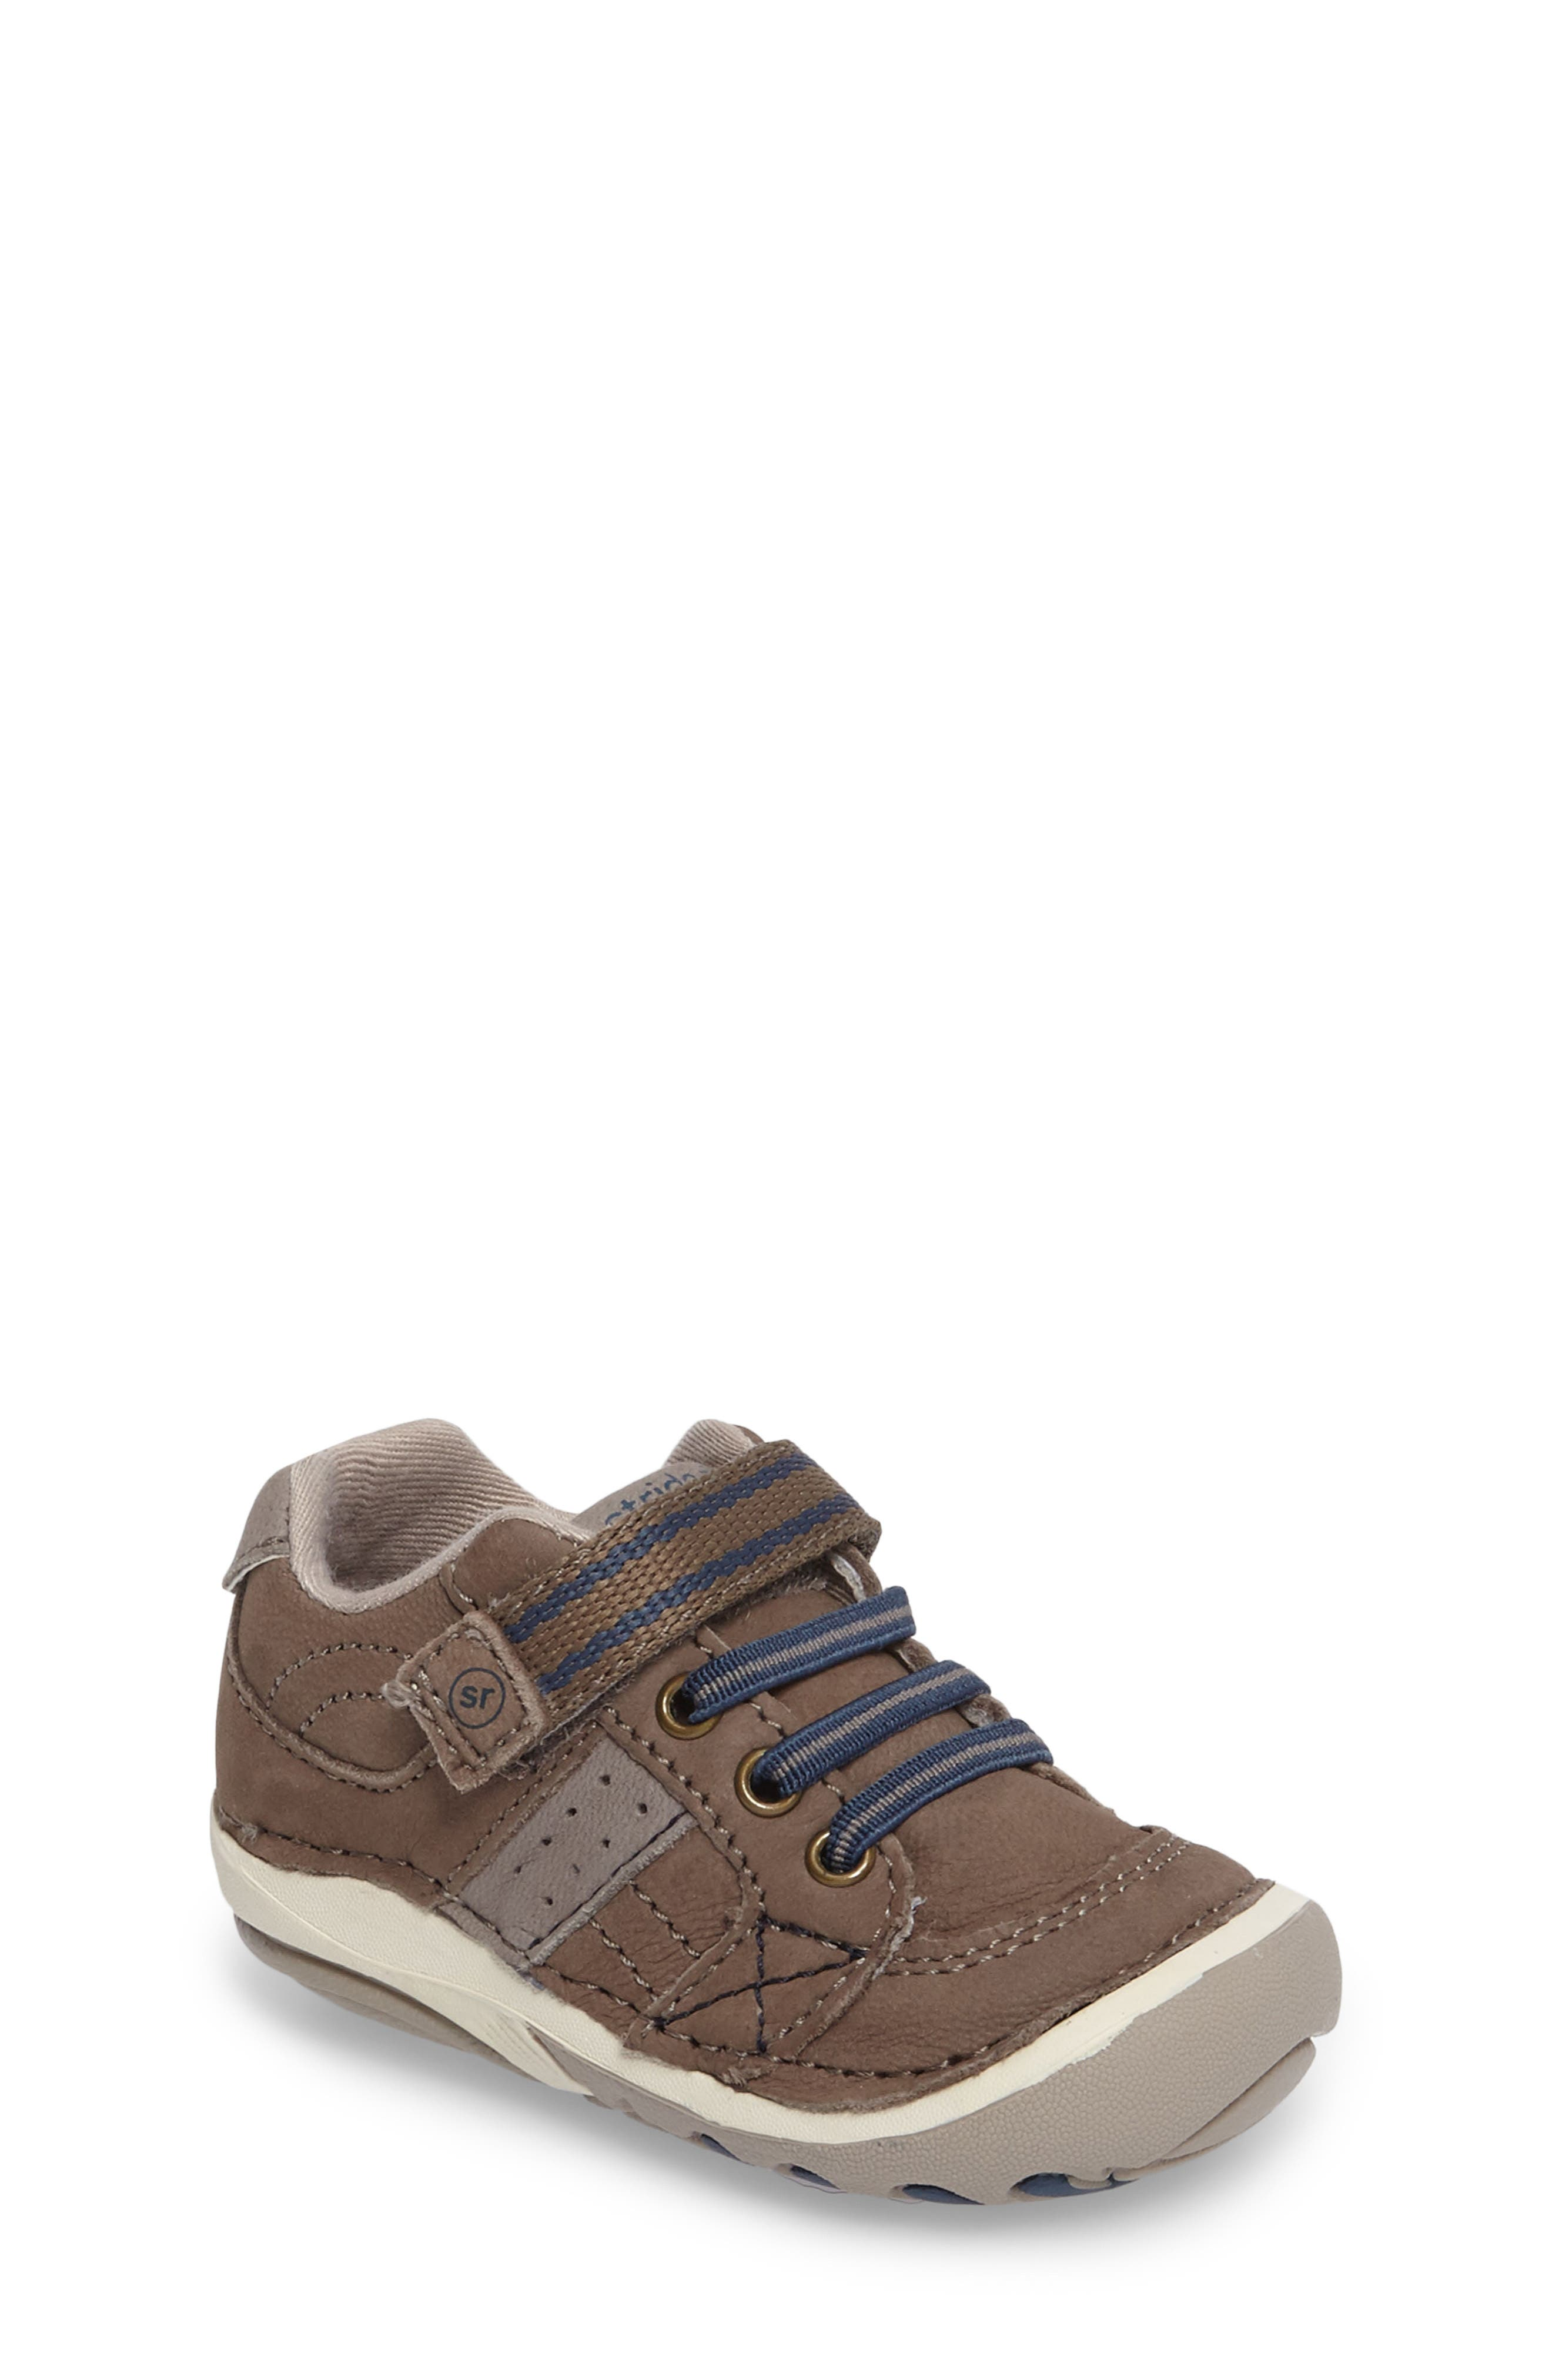 'Artie' Sneaker,                         Main,                         color, TRUFFLE